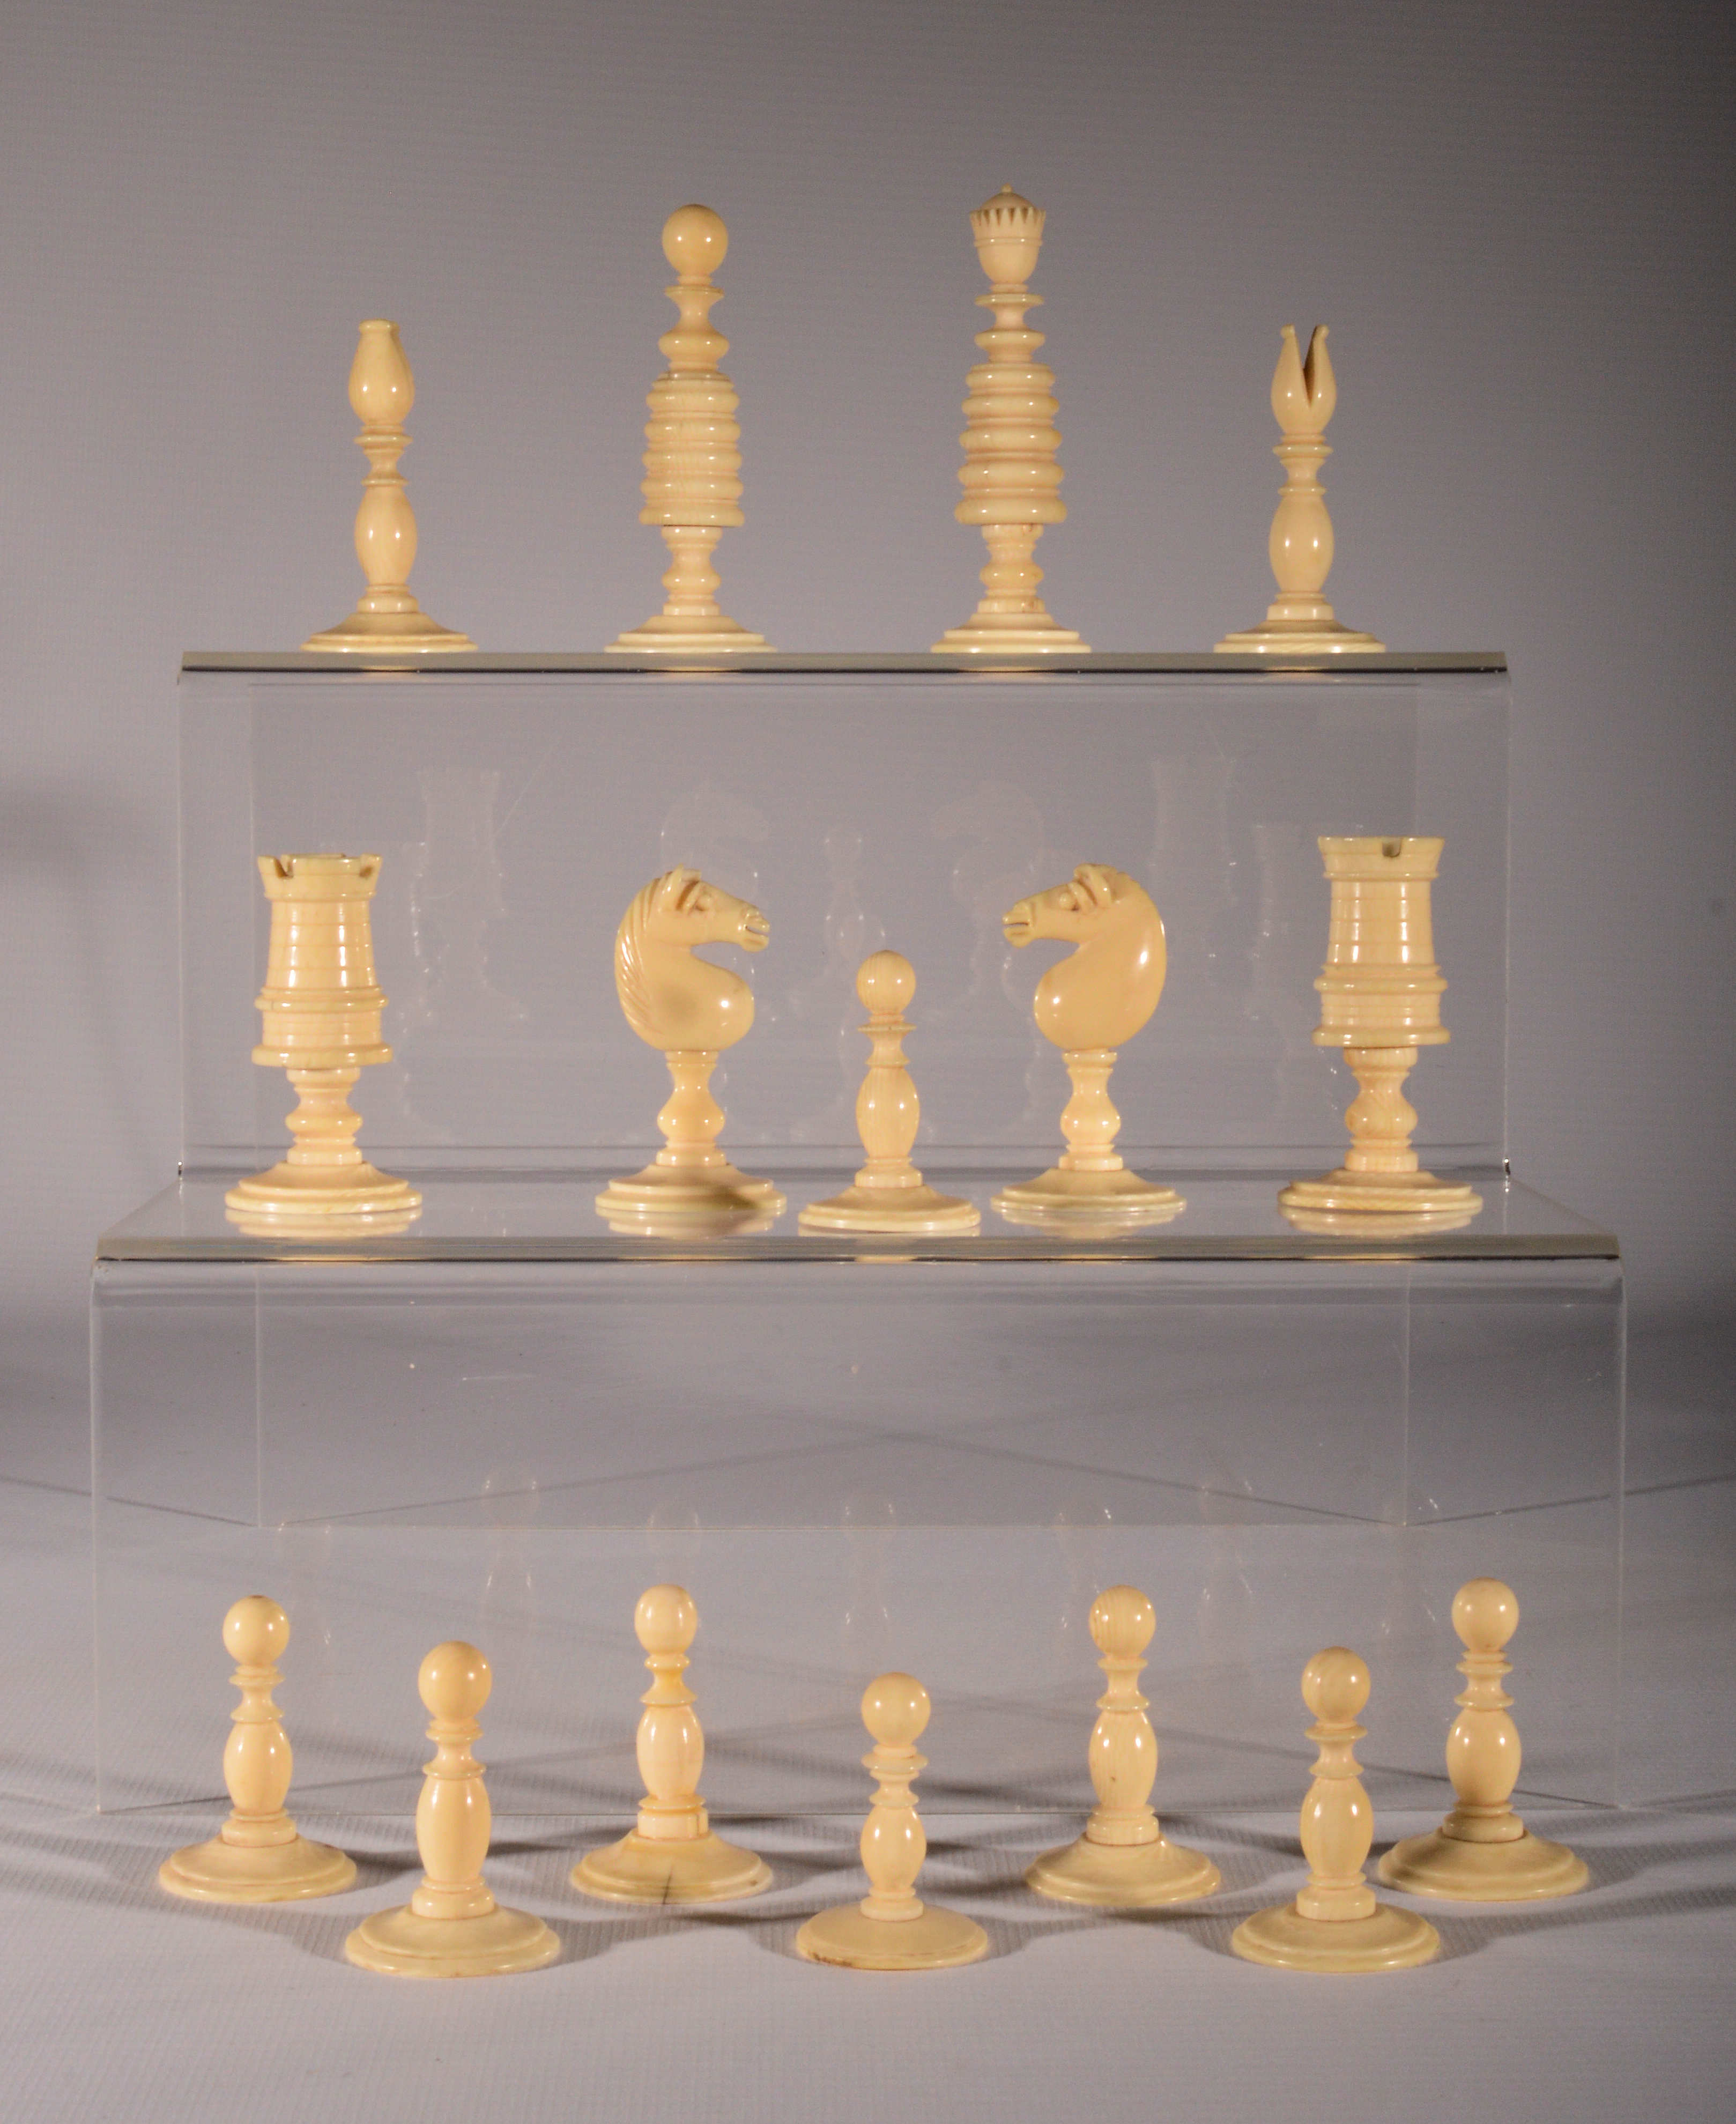 Antique early 19th century ivory chess set - Collectible chess sets ...